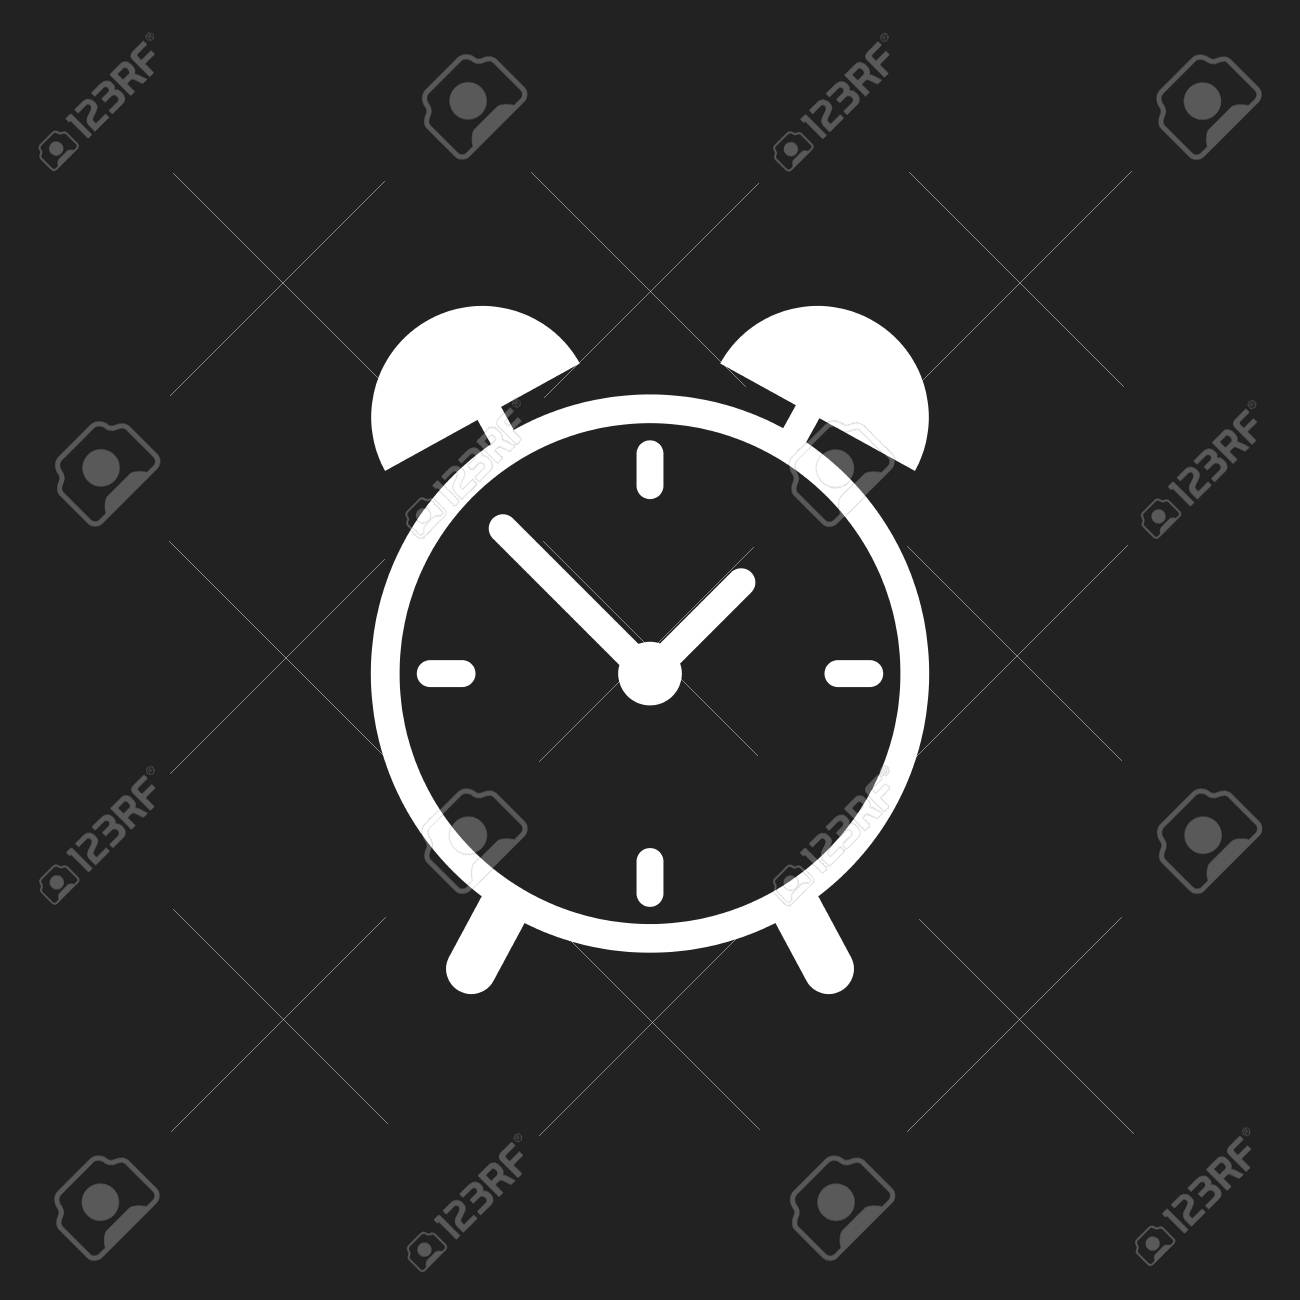 Alarm clock icon  Flat design style  Simple icon on black background